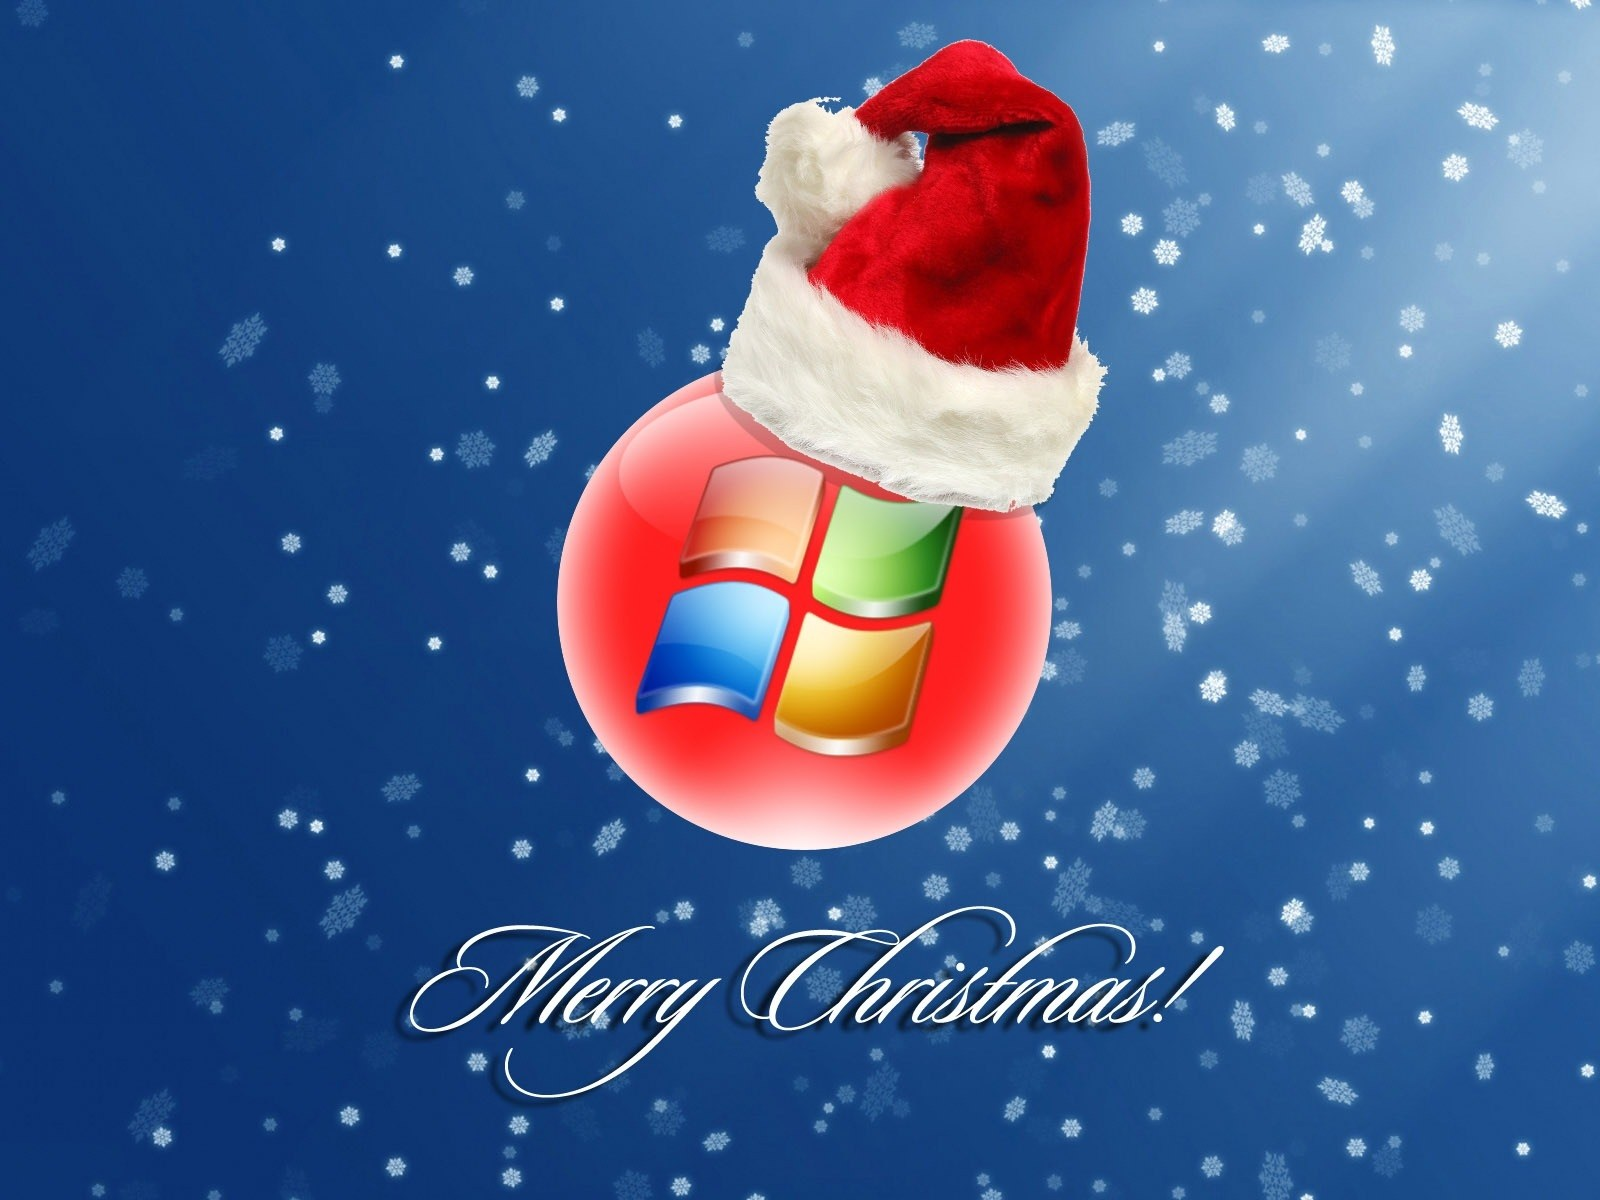 Windows 7 Christmas 882897 Hd Wallpaper Backgrounds Download